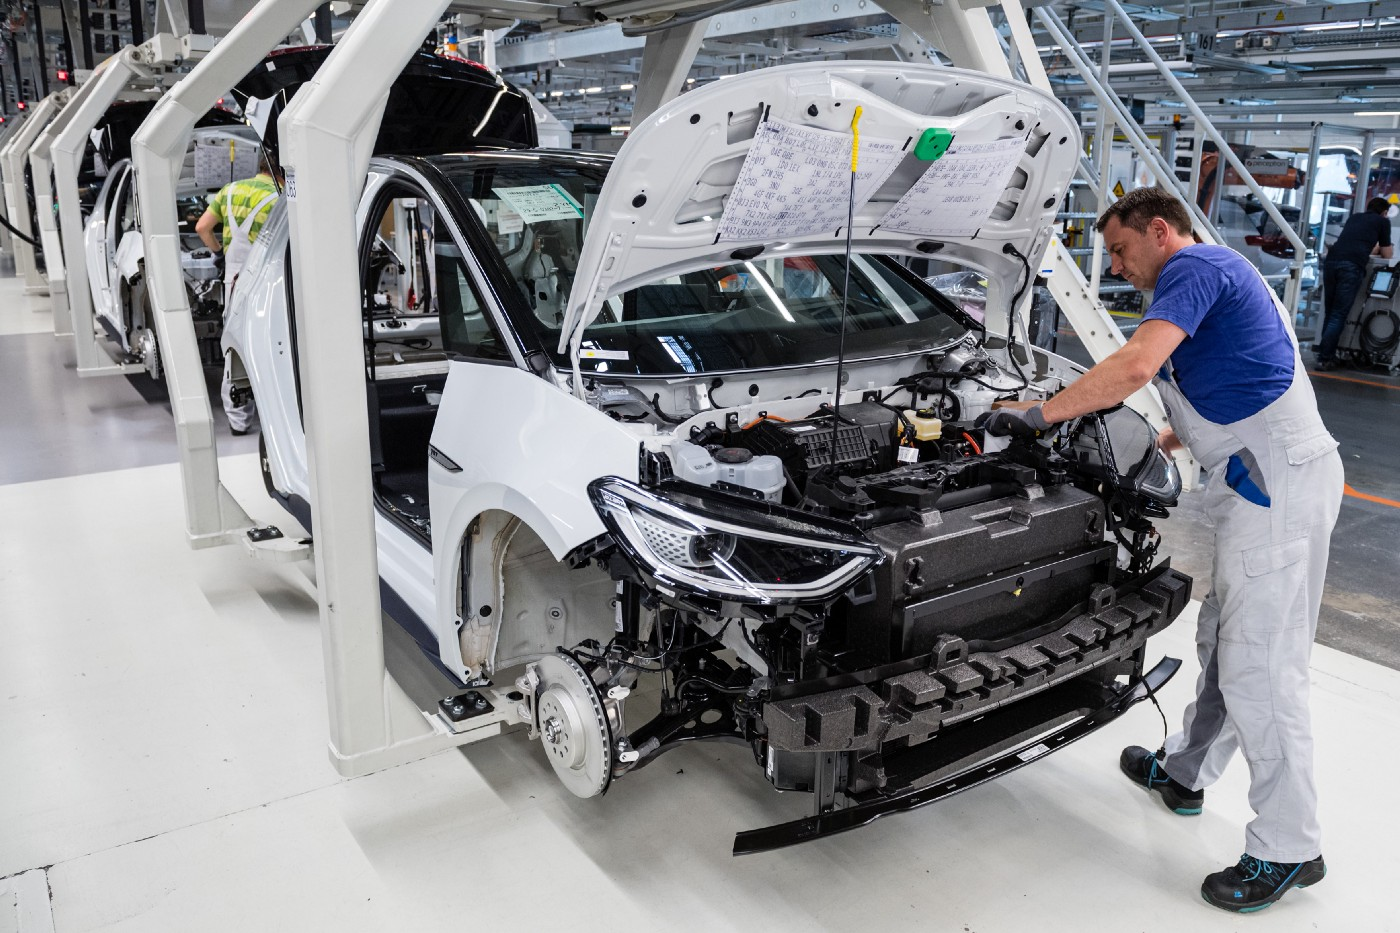 A worker assembles one of Volkswagen's ID.3 electric cars at their factory in Zwickau, Germany on July 31, 2020.